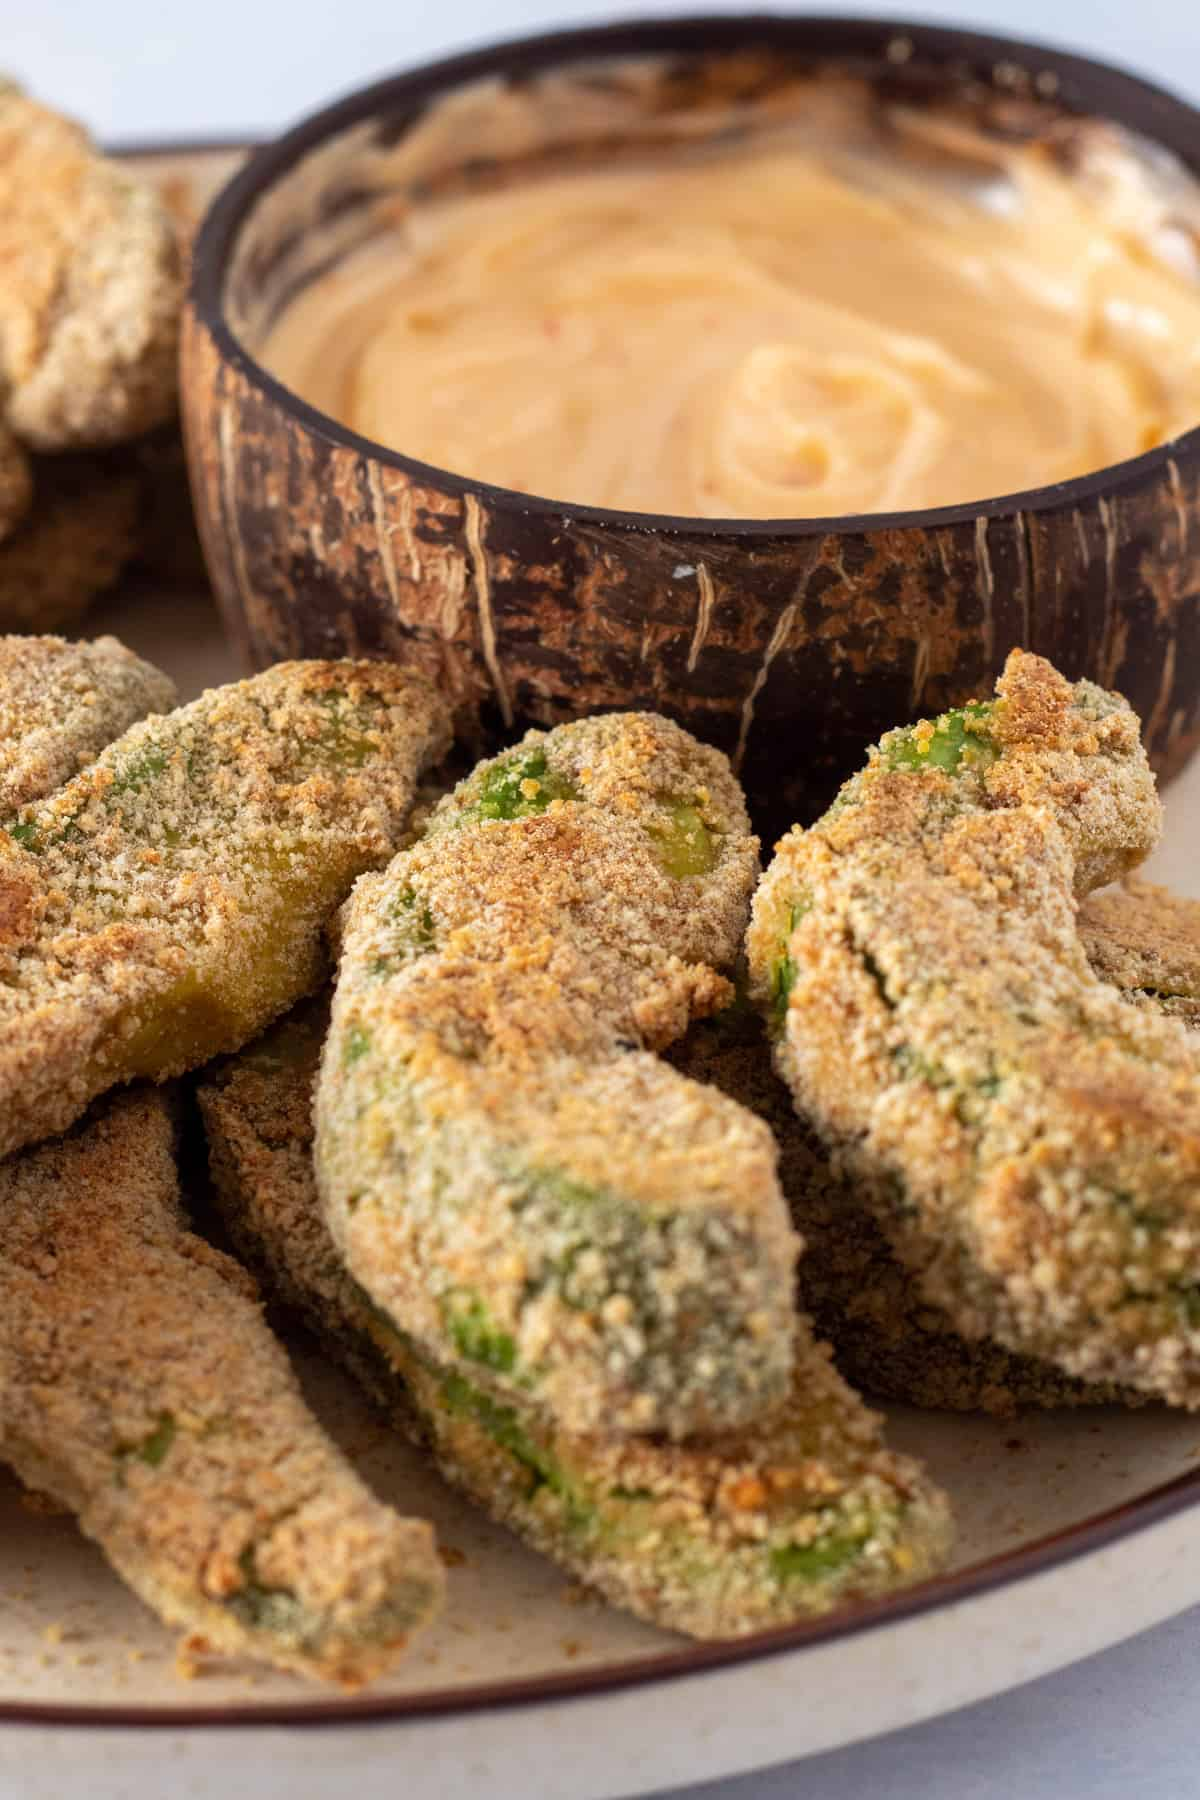 Close up shot of avocado fries showing the texture when it's done baking, as well as a dipping sauce in the background